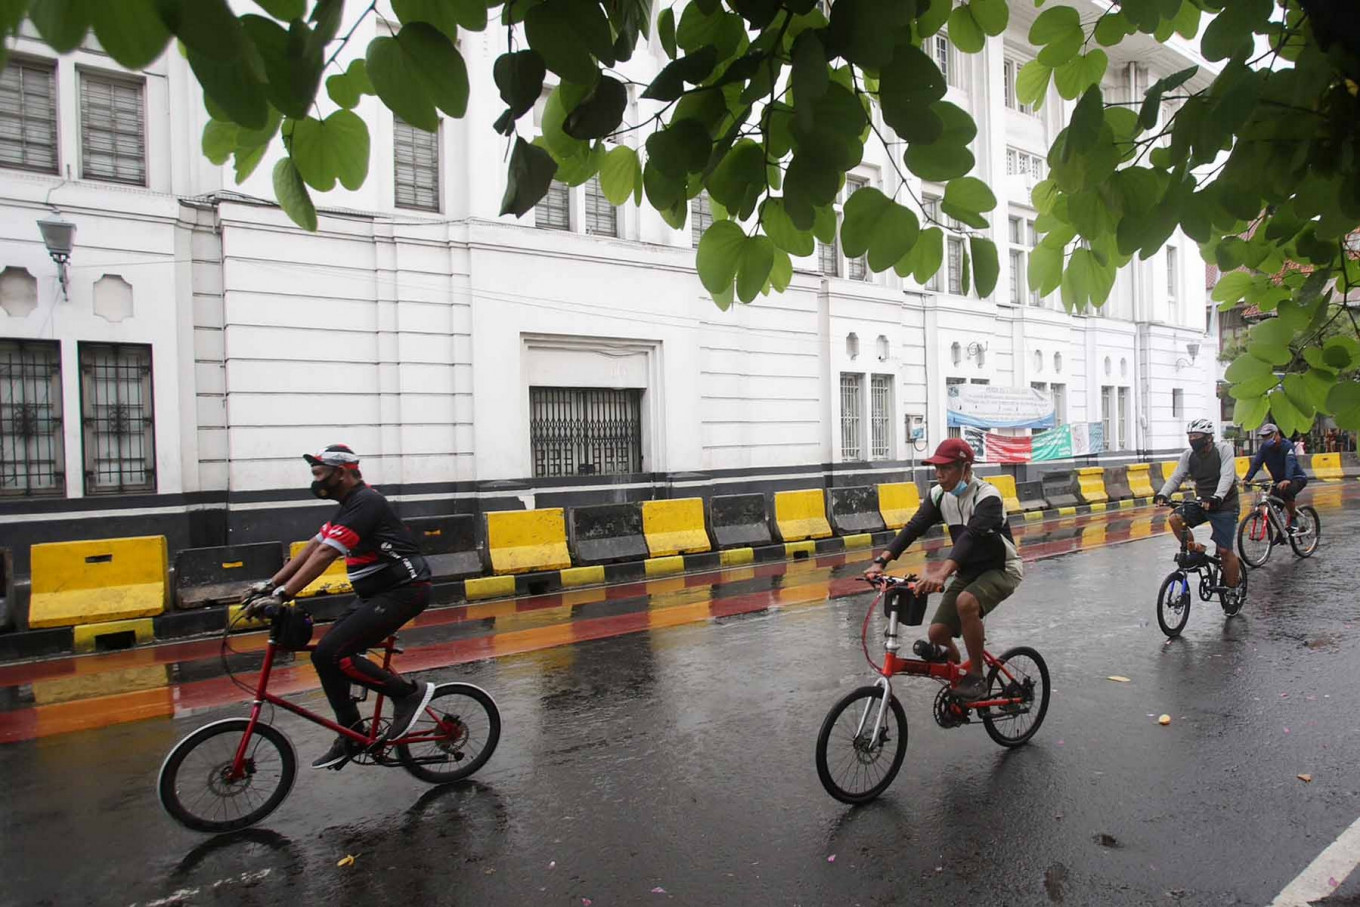 Cyclists pass through Kota Tua, West Jakarta, on Dec. 20. The city administration has limited the number of motorized vehicles that are permitted in the heritage tourist site during a low-emission zone trial from Dec. 18 to Dec. 23. JP/Wendra Ajistyatama